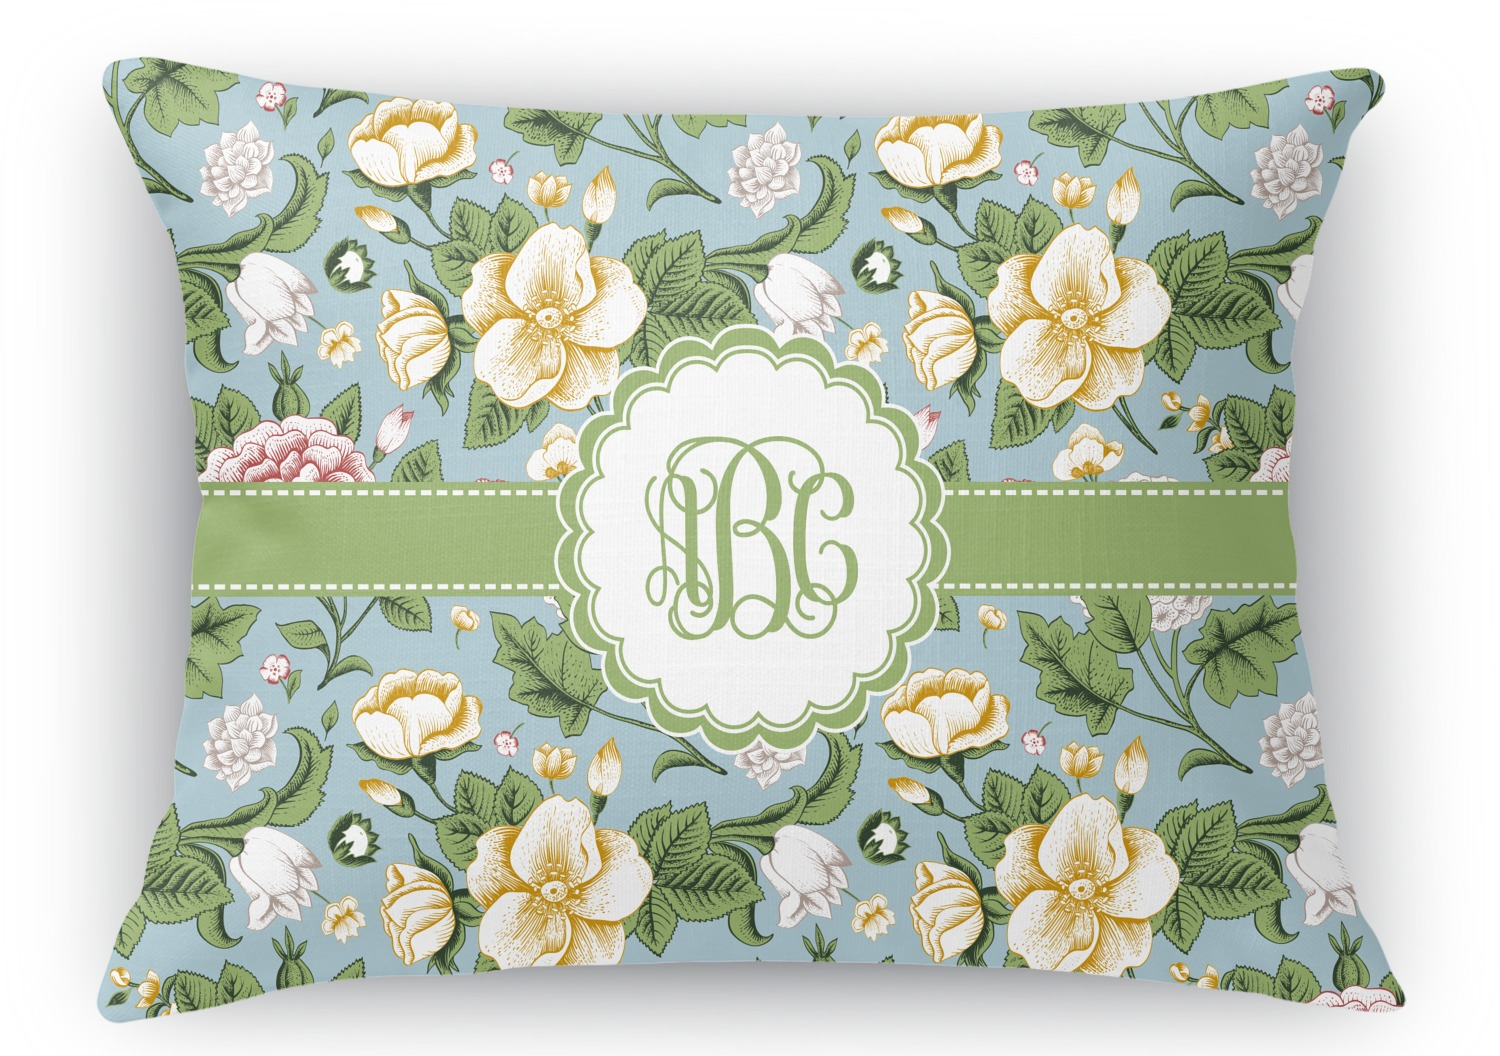 Vintage Floral Rectangular Throw Pillow - 18